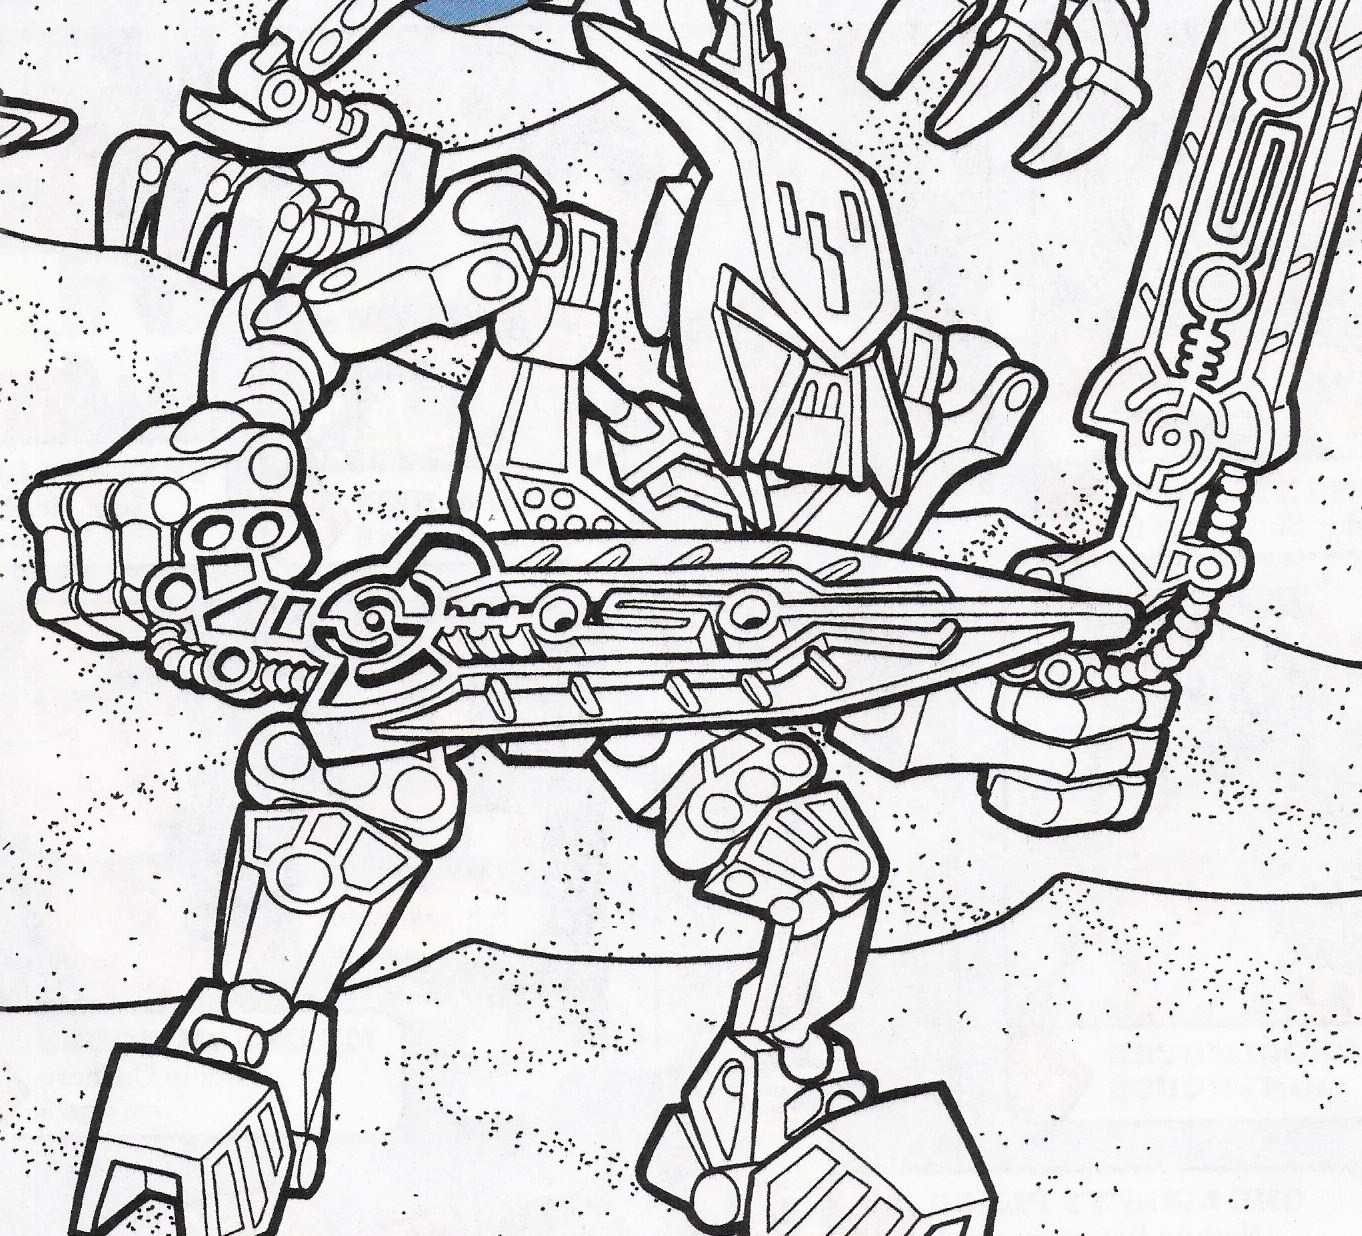 1362x1236 Bionicle Coloring Pages To Download And Print For Free